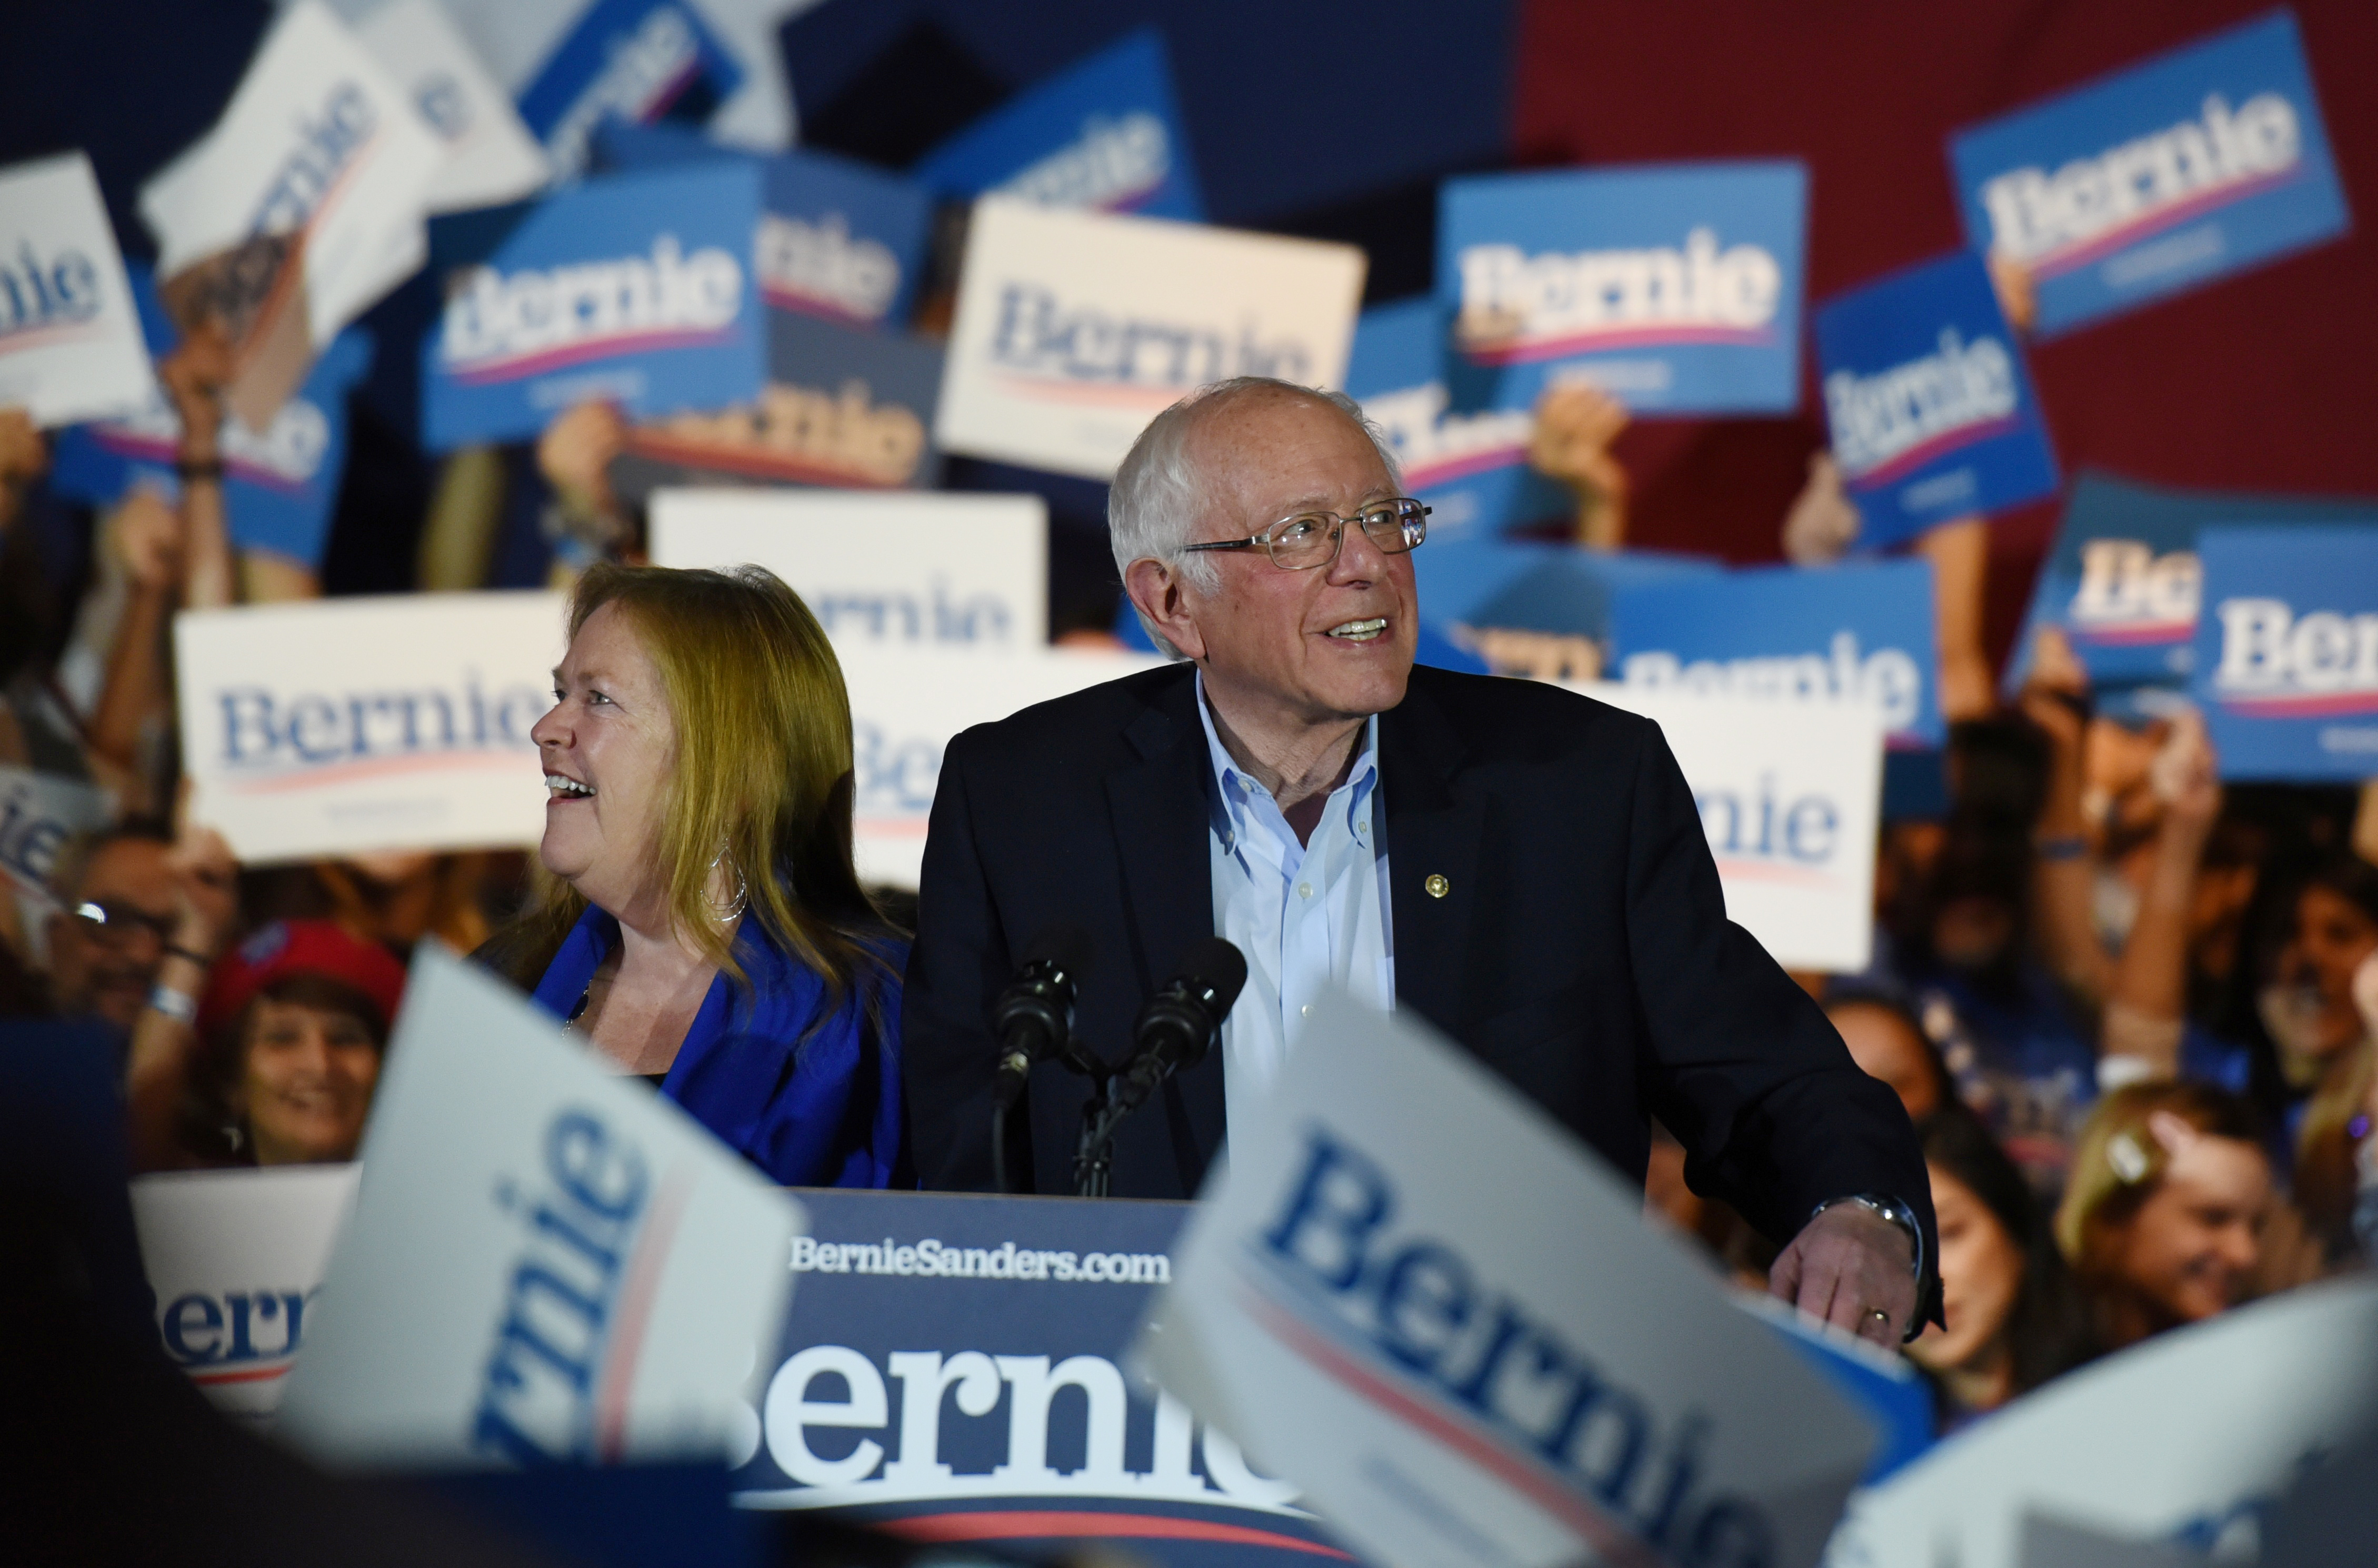 Despite attacks, Sanders' Medicare for All boosts early-state triumphs